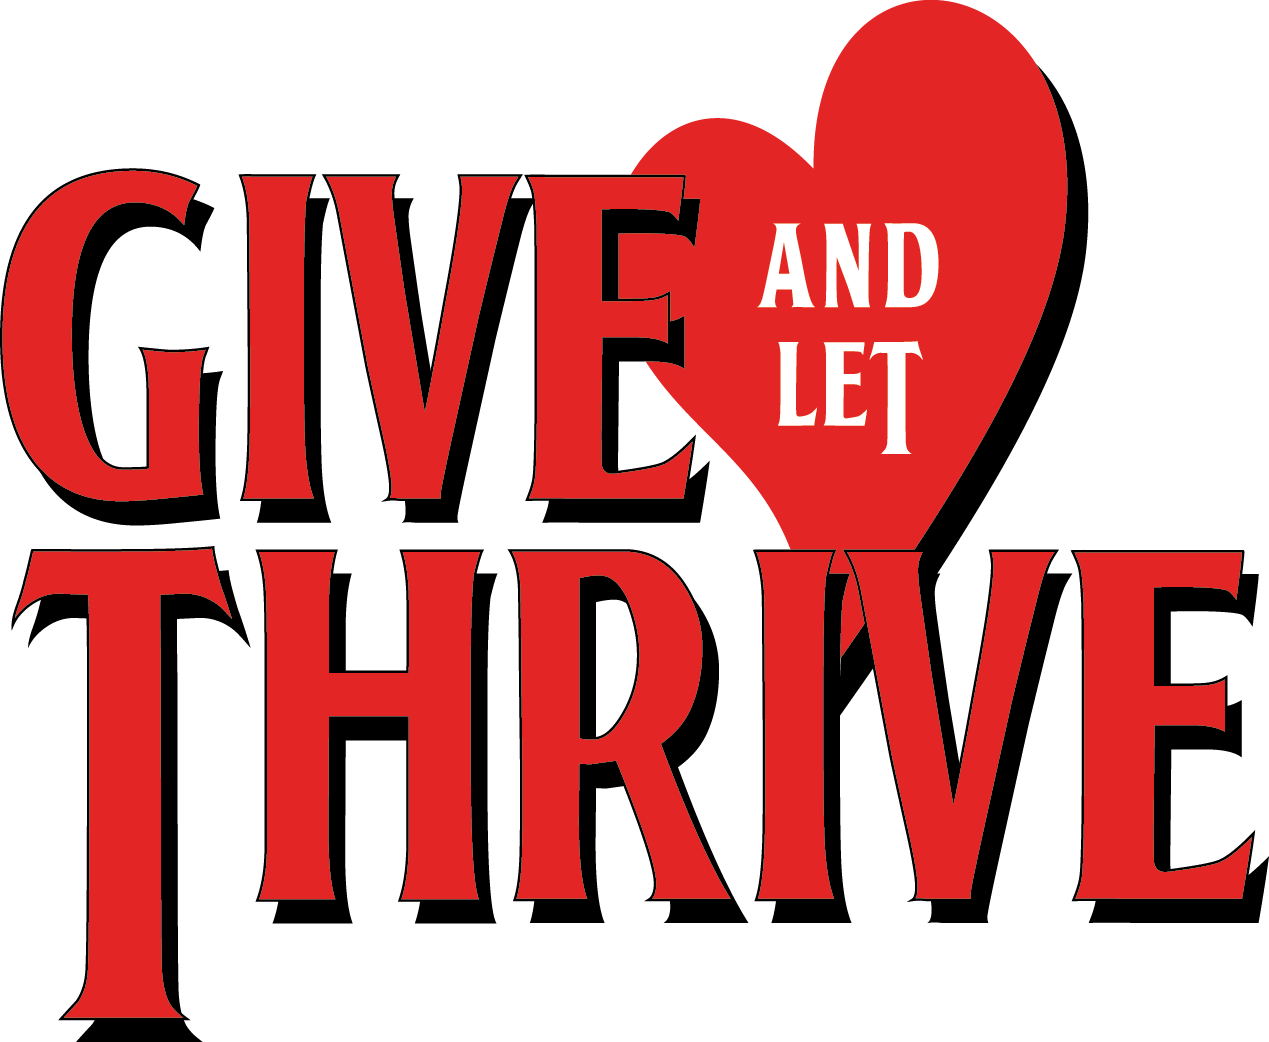 Give_and_Let_Thrive copy-04.png